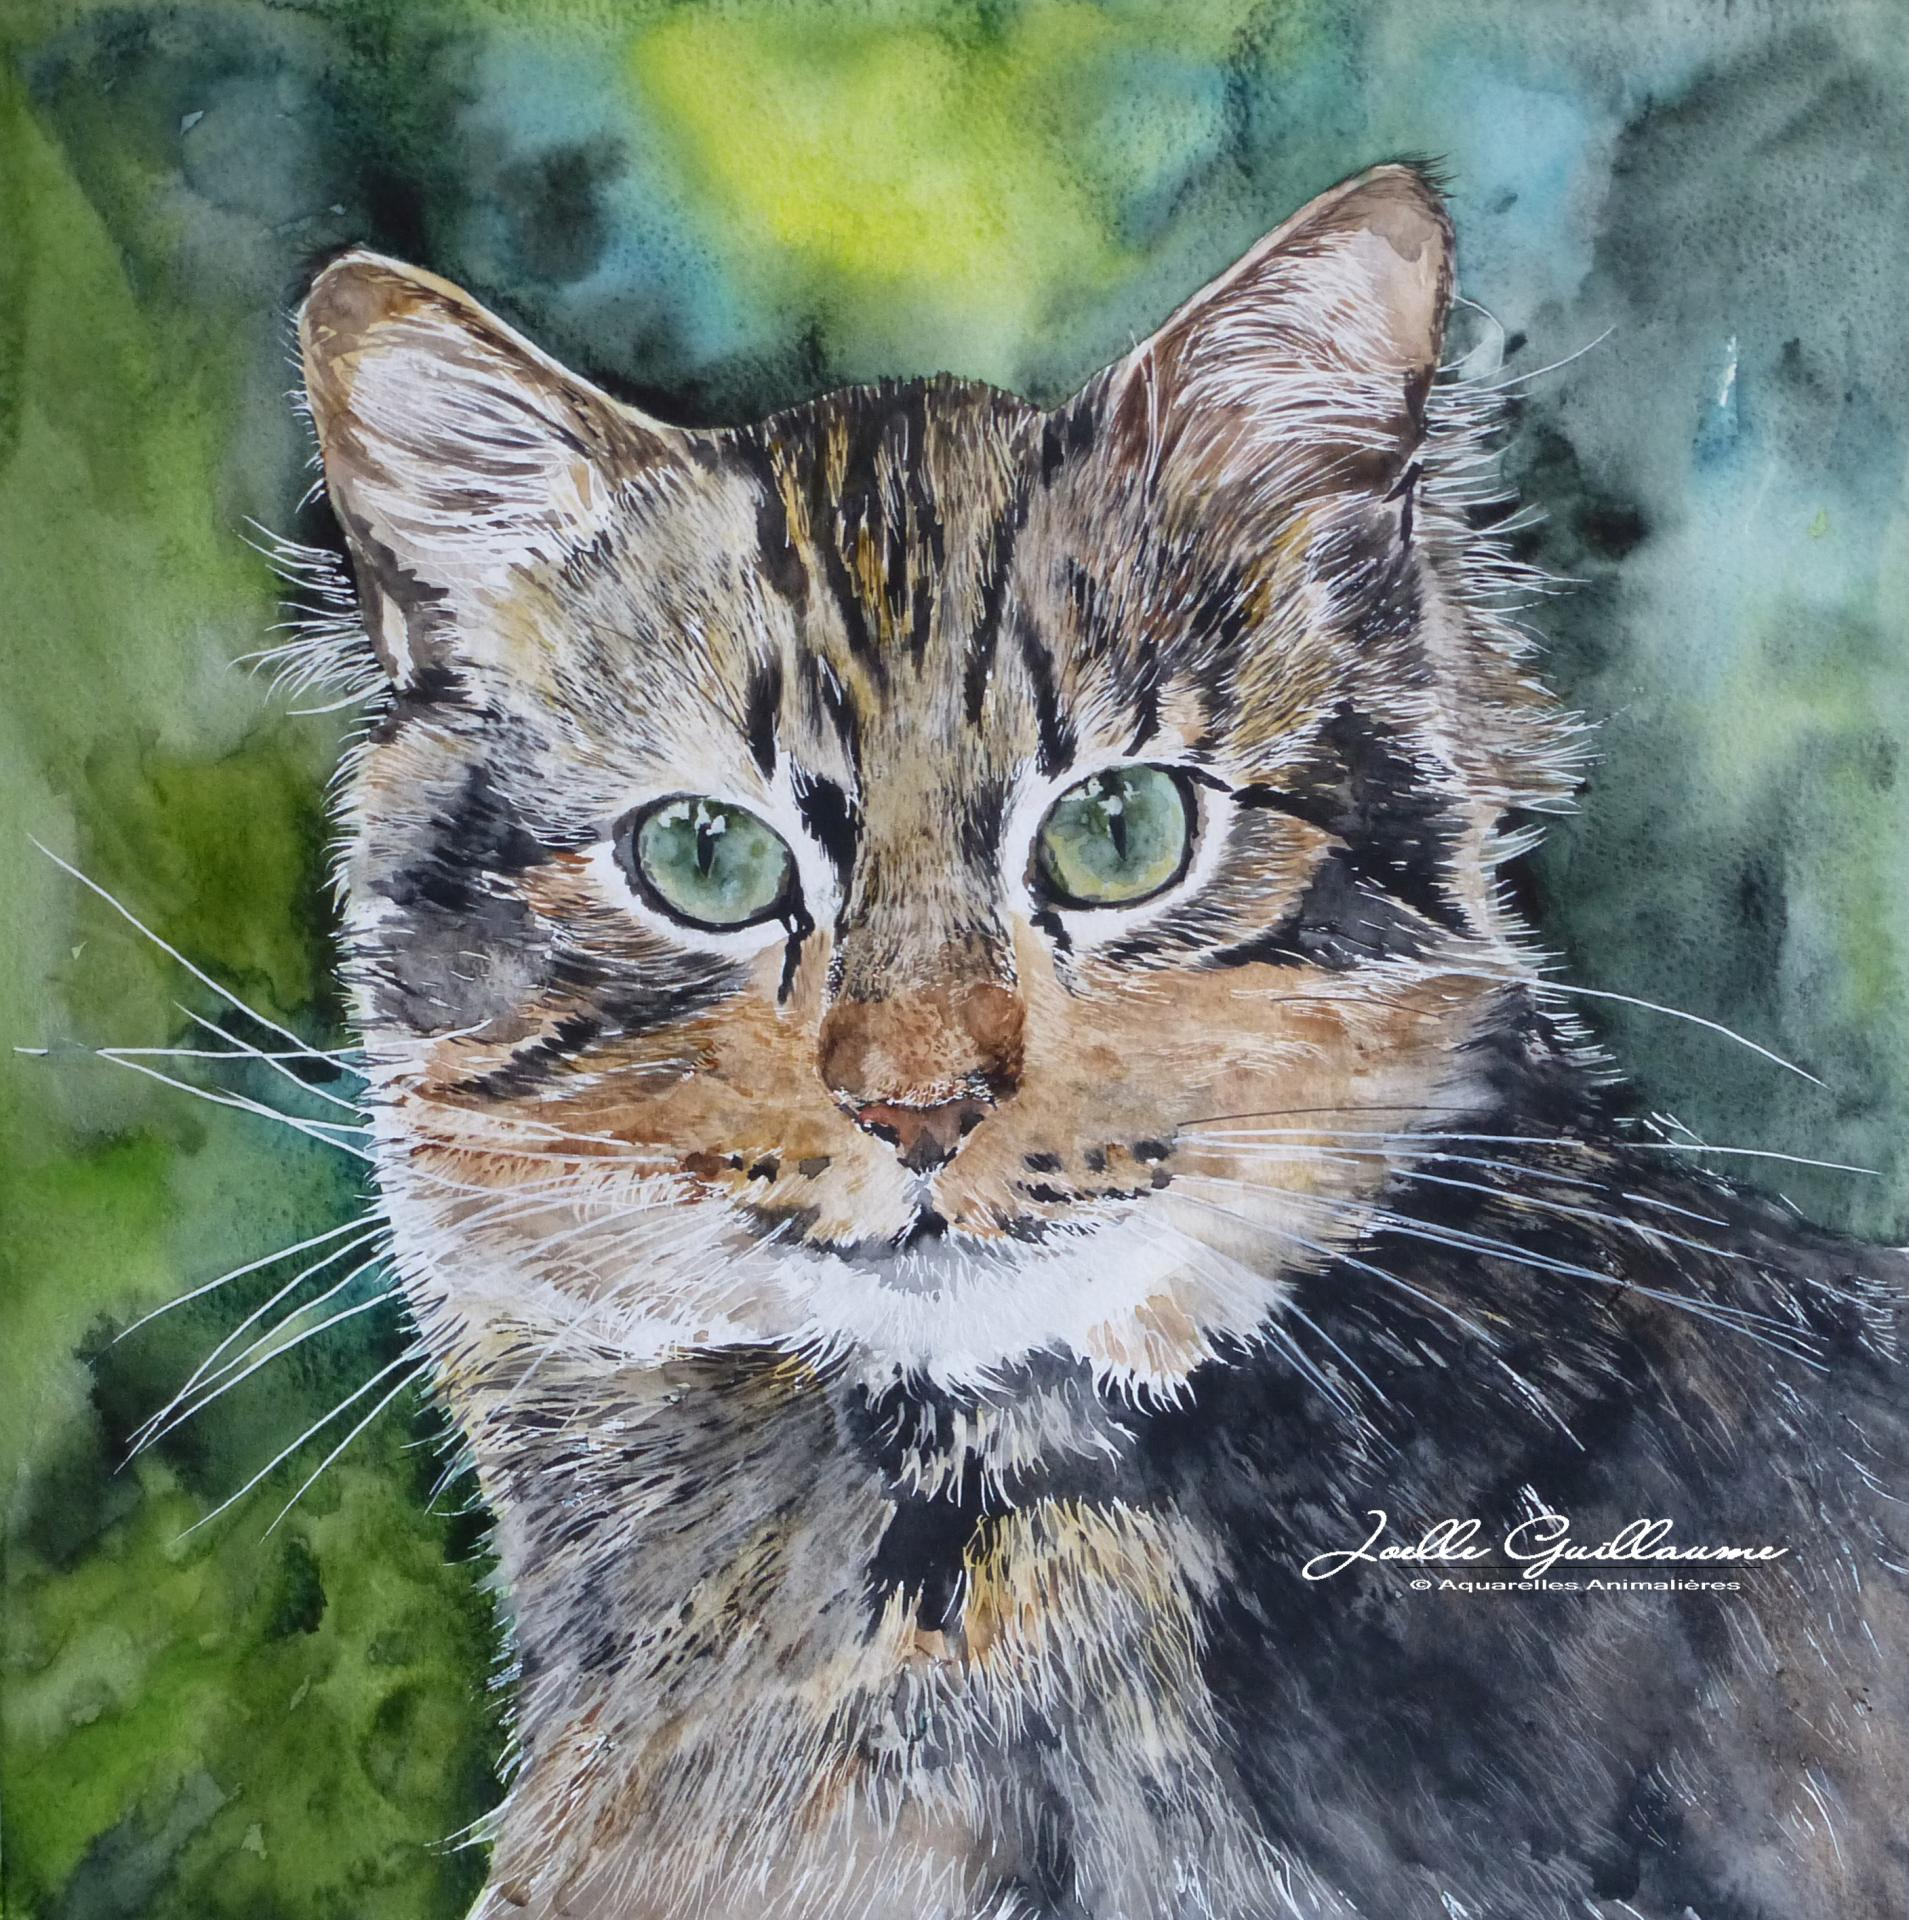 Chat Forestier - Aquarelle